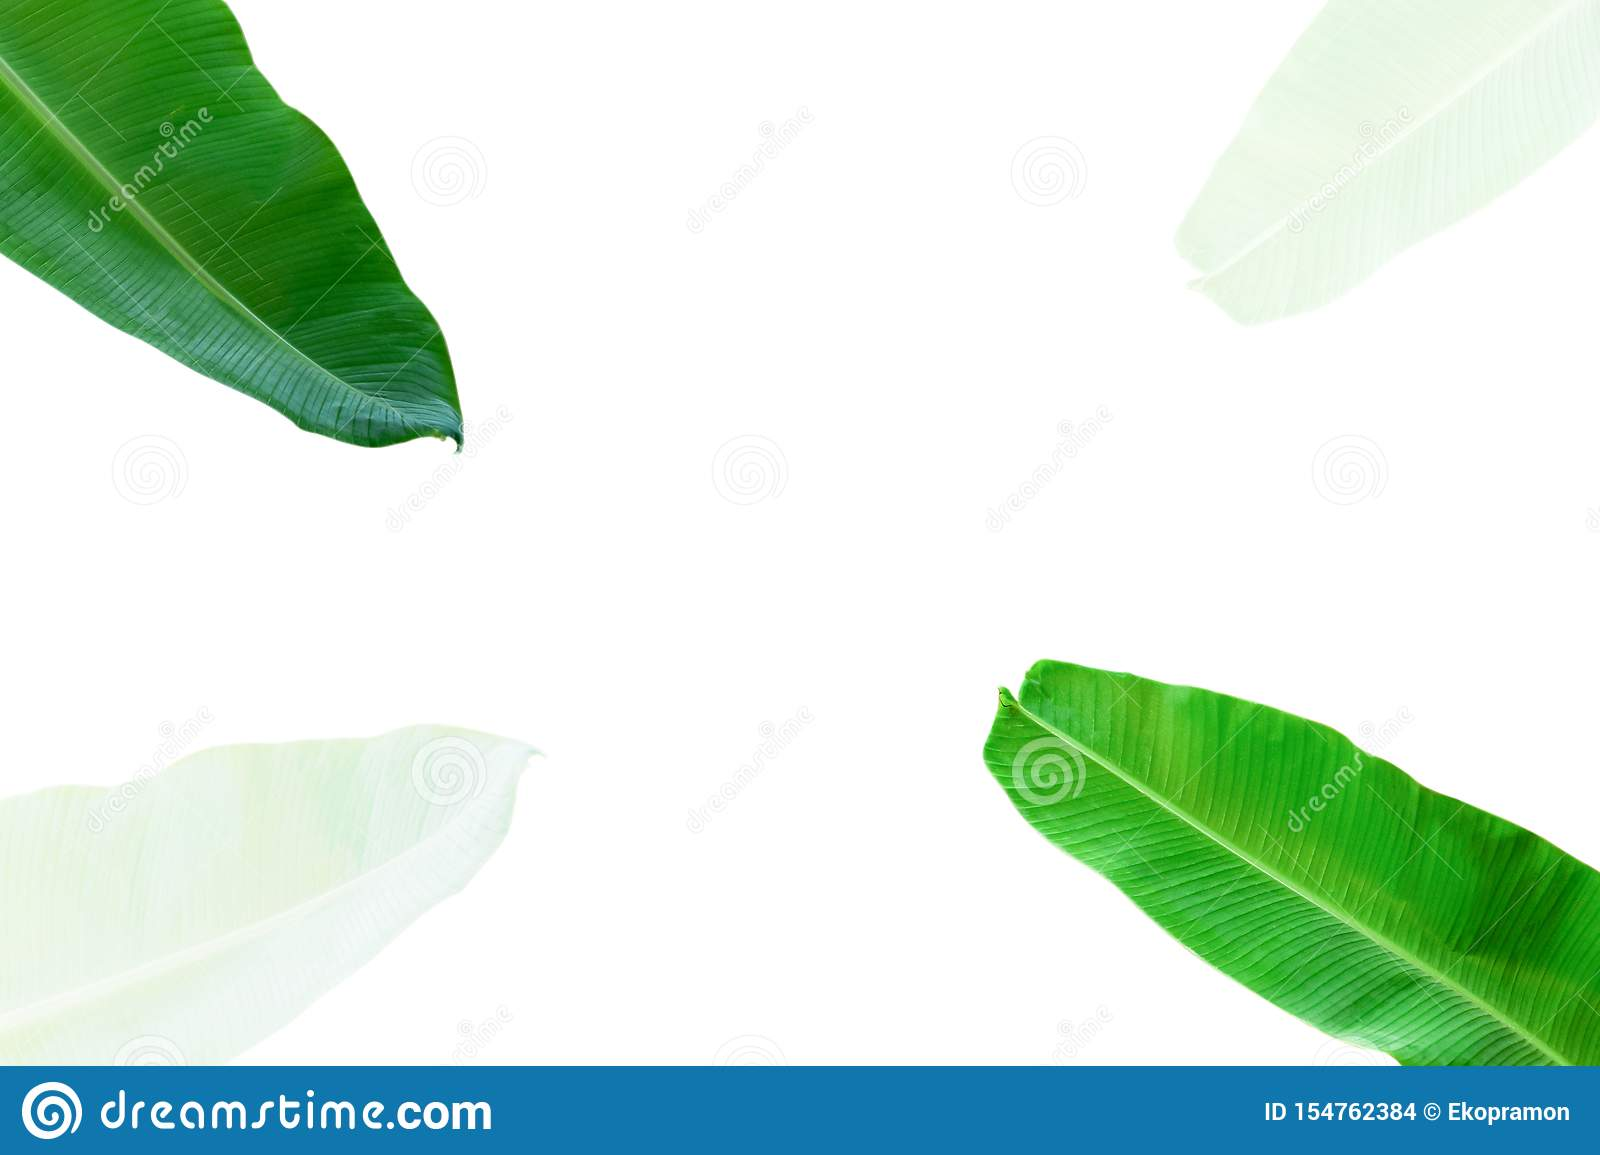 creative layout made of flowers and banana leaves with